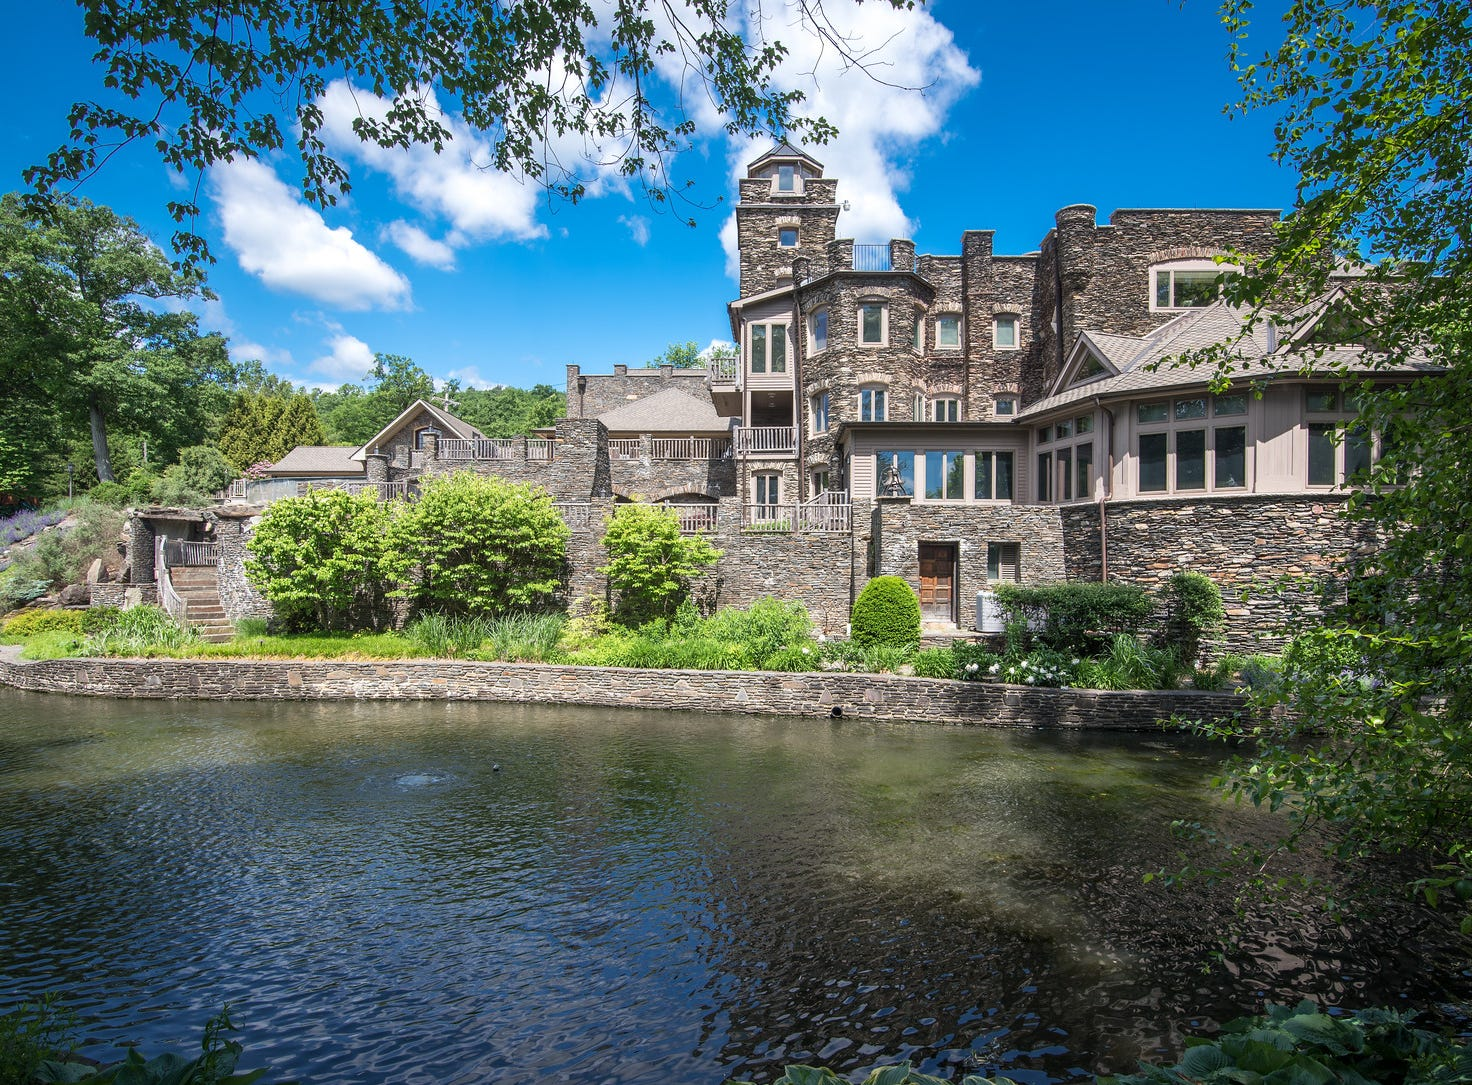 A private lagoon is part of the estate on the shore of Greenwood Lake in New York State listed for sale at $14.75 million.